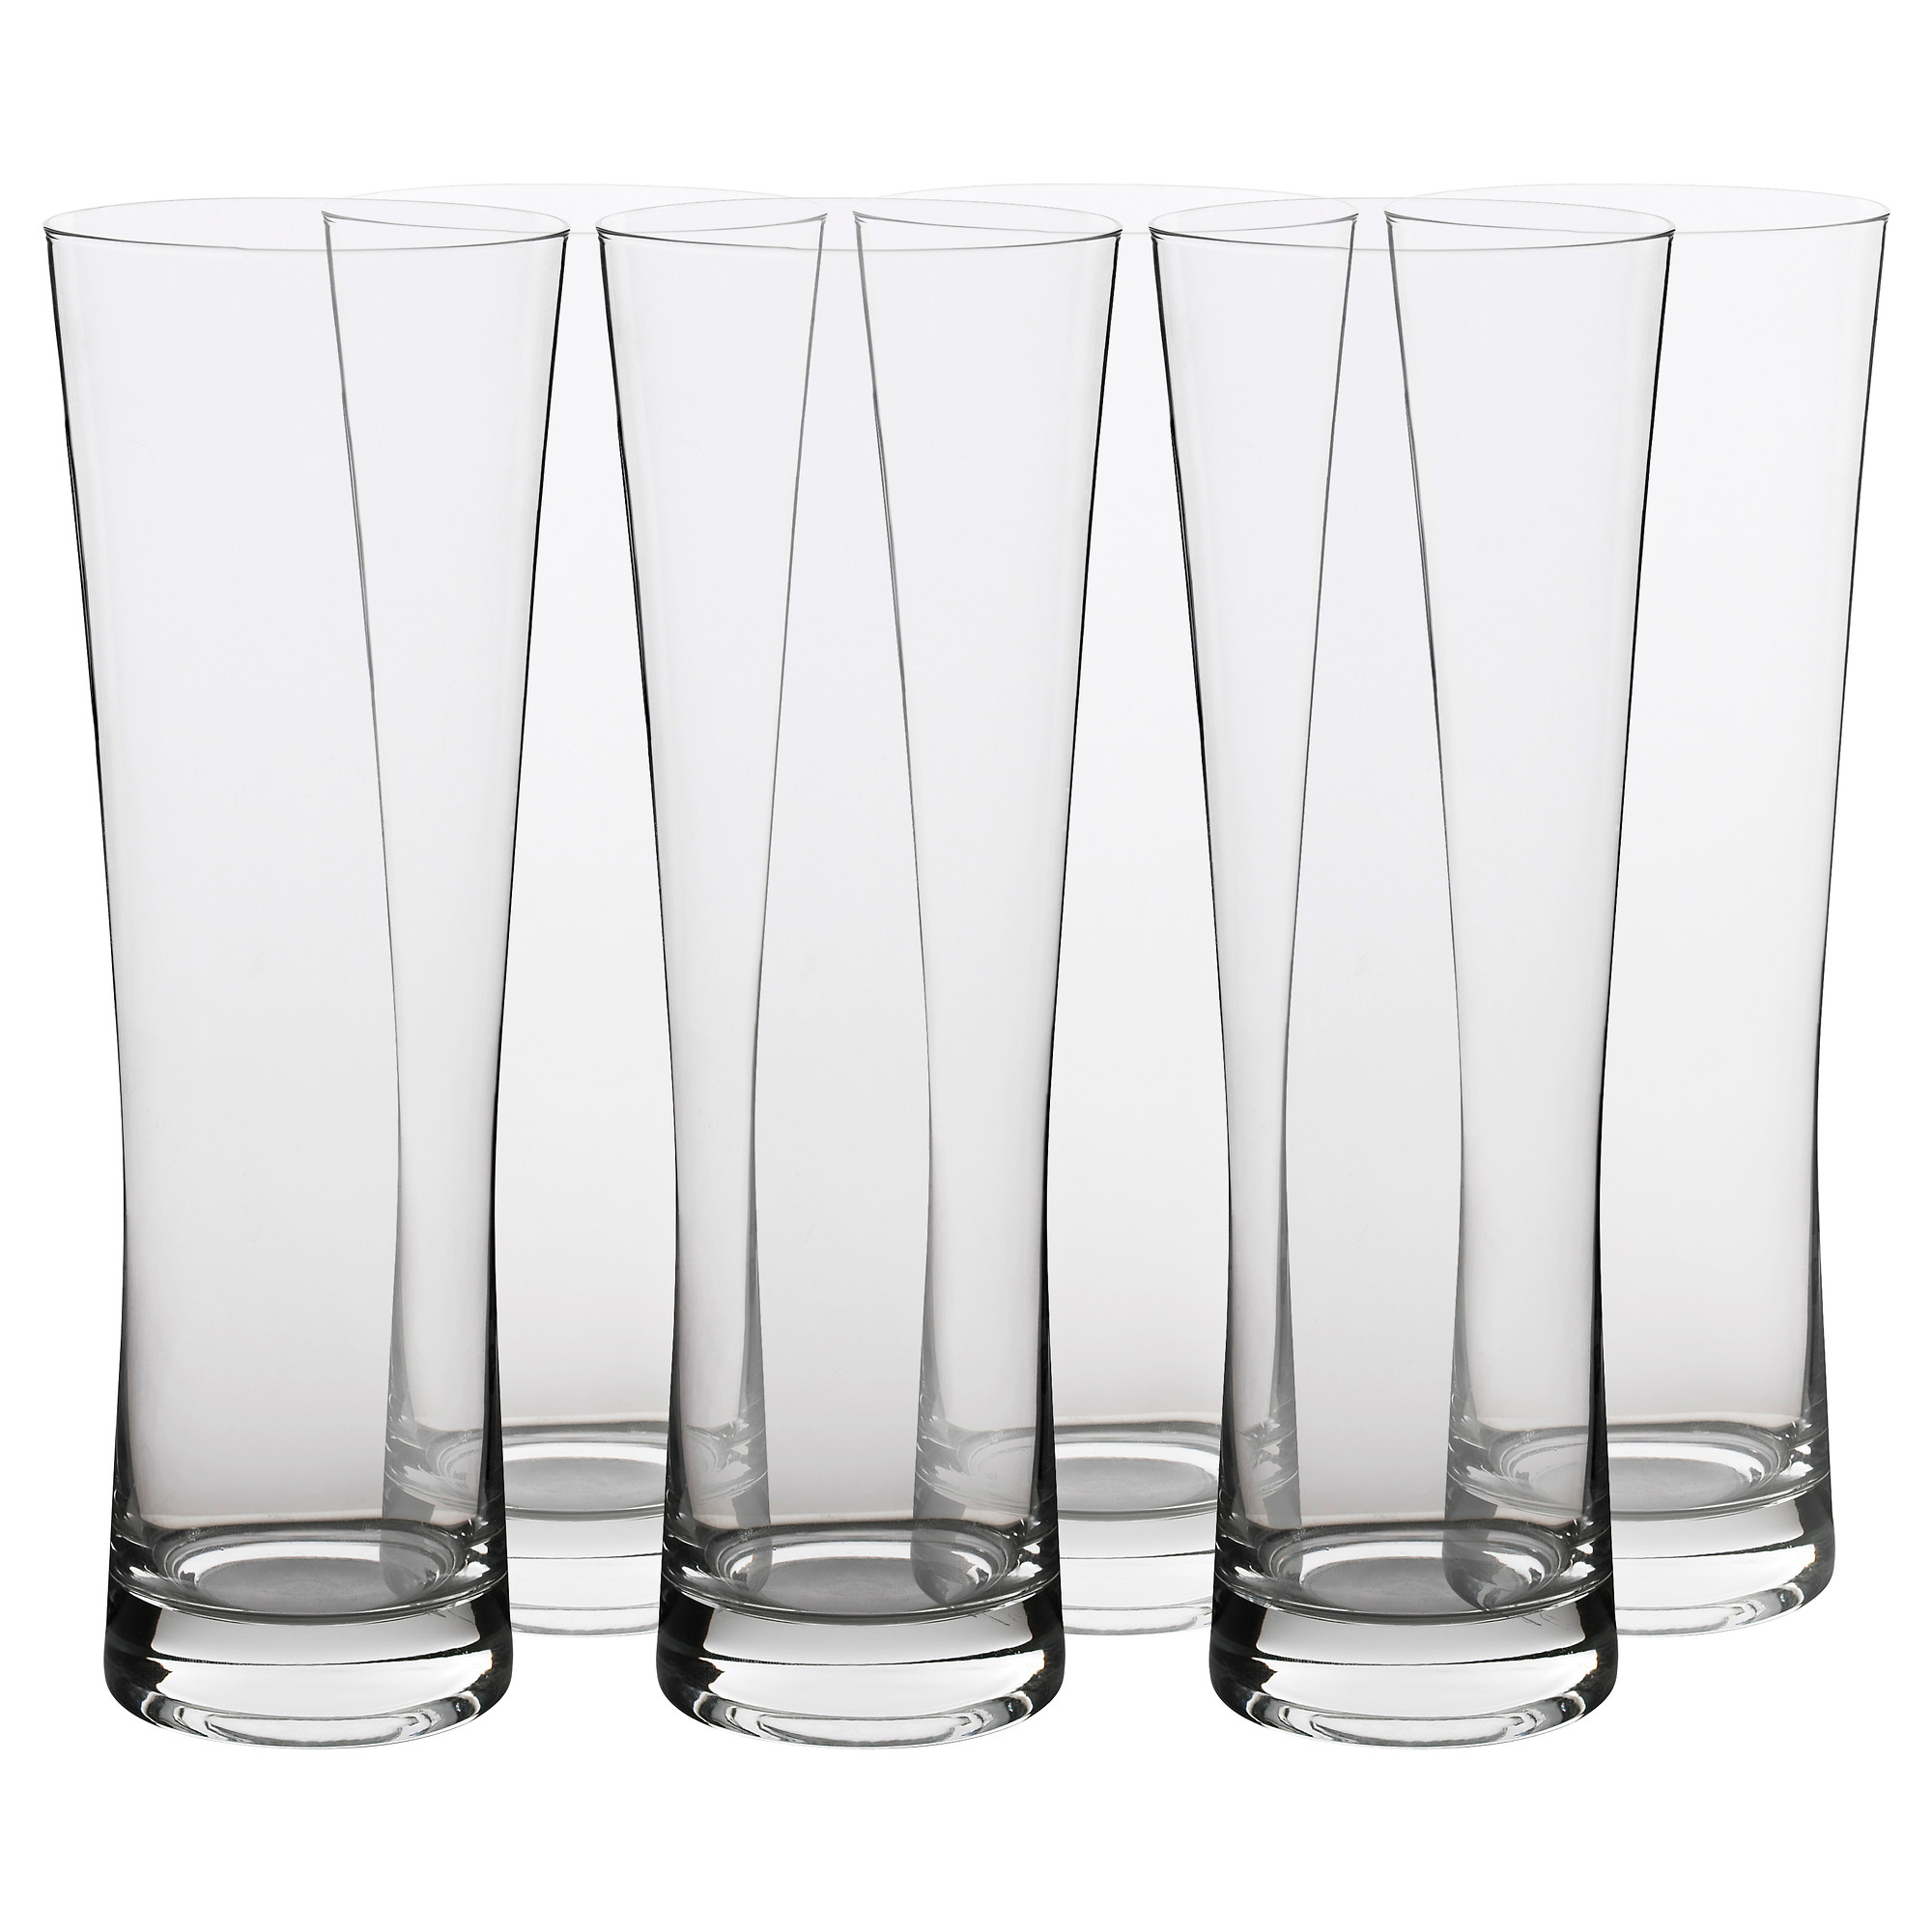 MjÖd Beer Glass  Ikea Only $999 For A 6 Pack  I Want. Kitchen Interior Philippines. Mini Kitchen Outdoor. Kitchen Greenhouse. Kitchen Cupboards Polokwane. Pictures Of Kitchen Desk Areas. Kitchen Window With Shelf. Old Kitchen Tables Gumtree. Country Kitchen Yellow And Blue